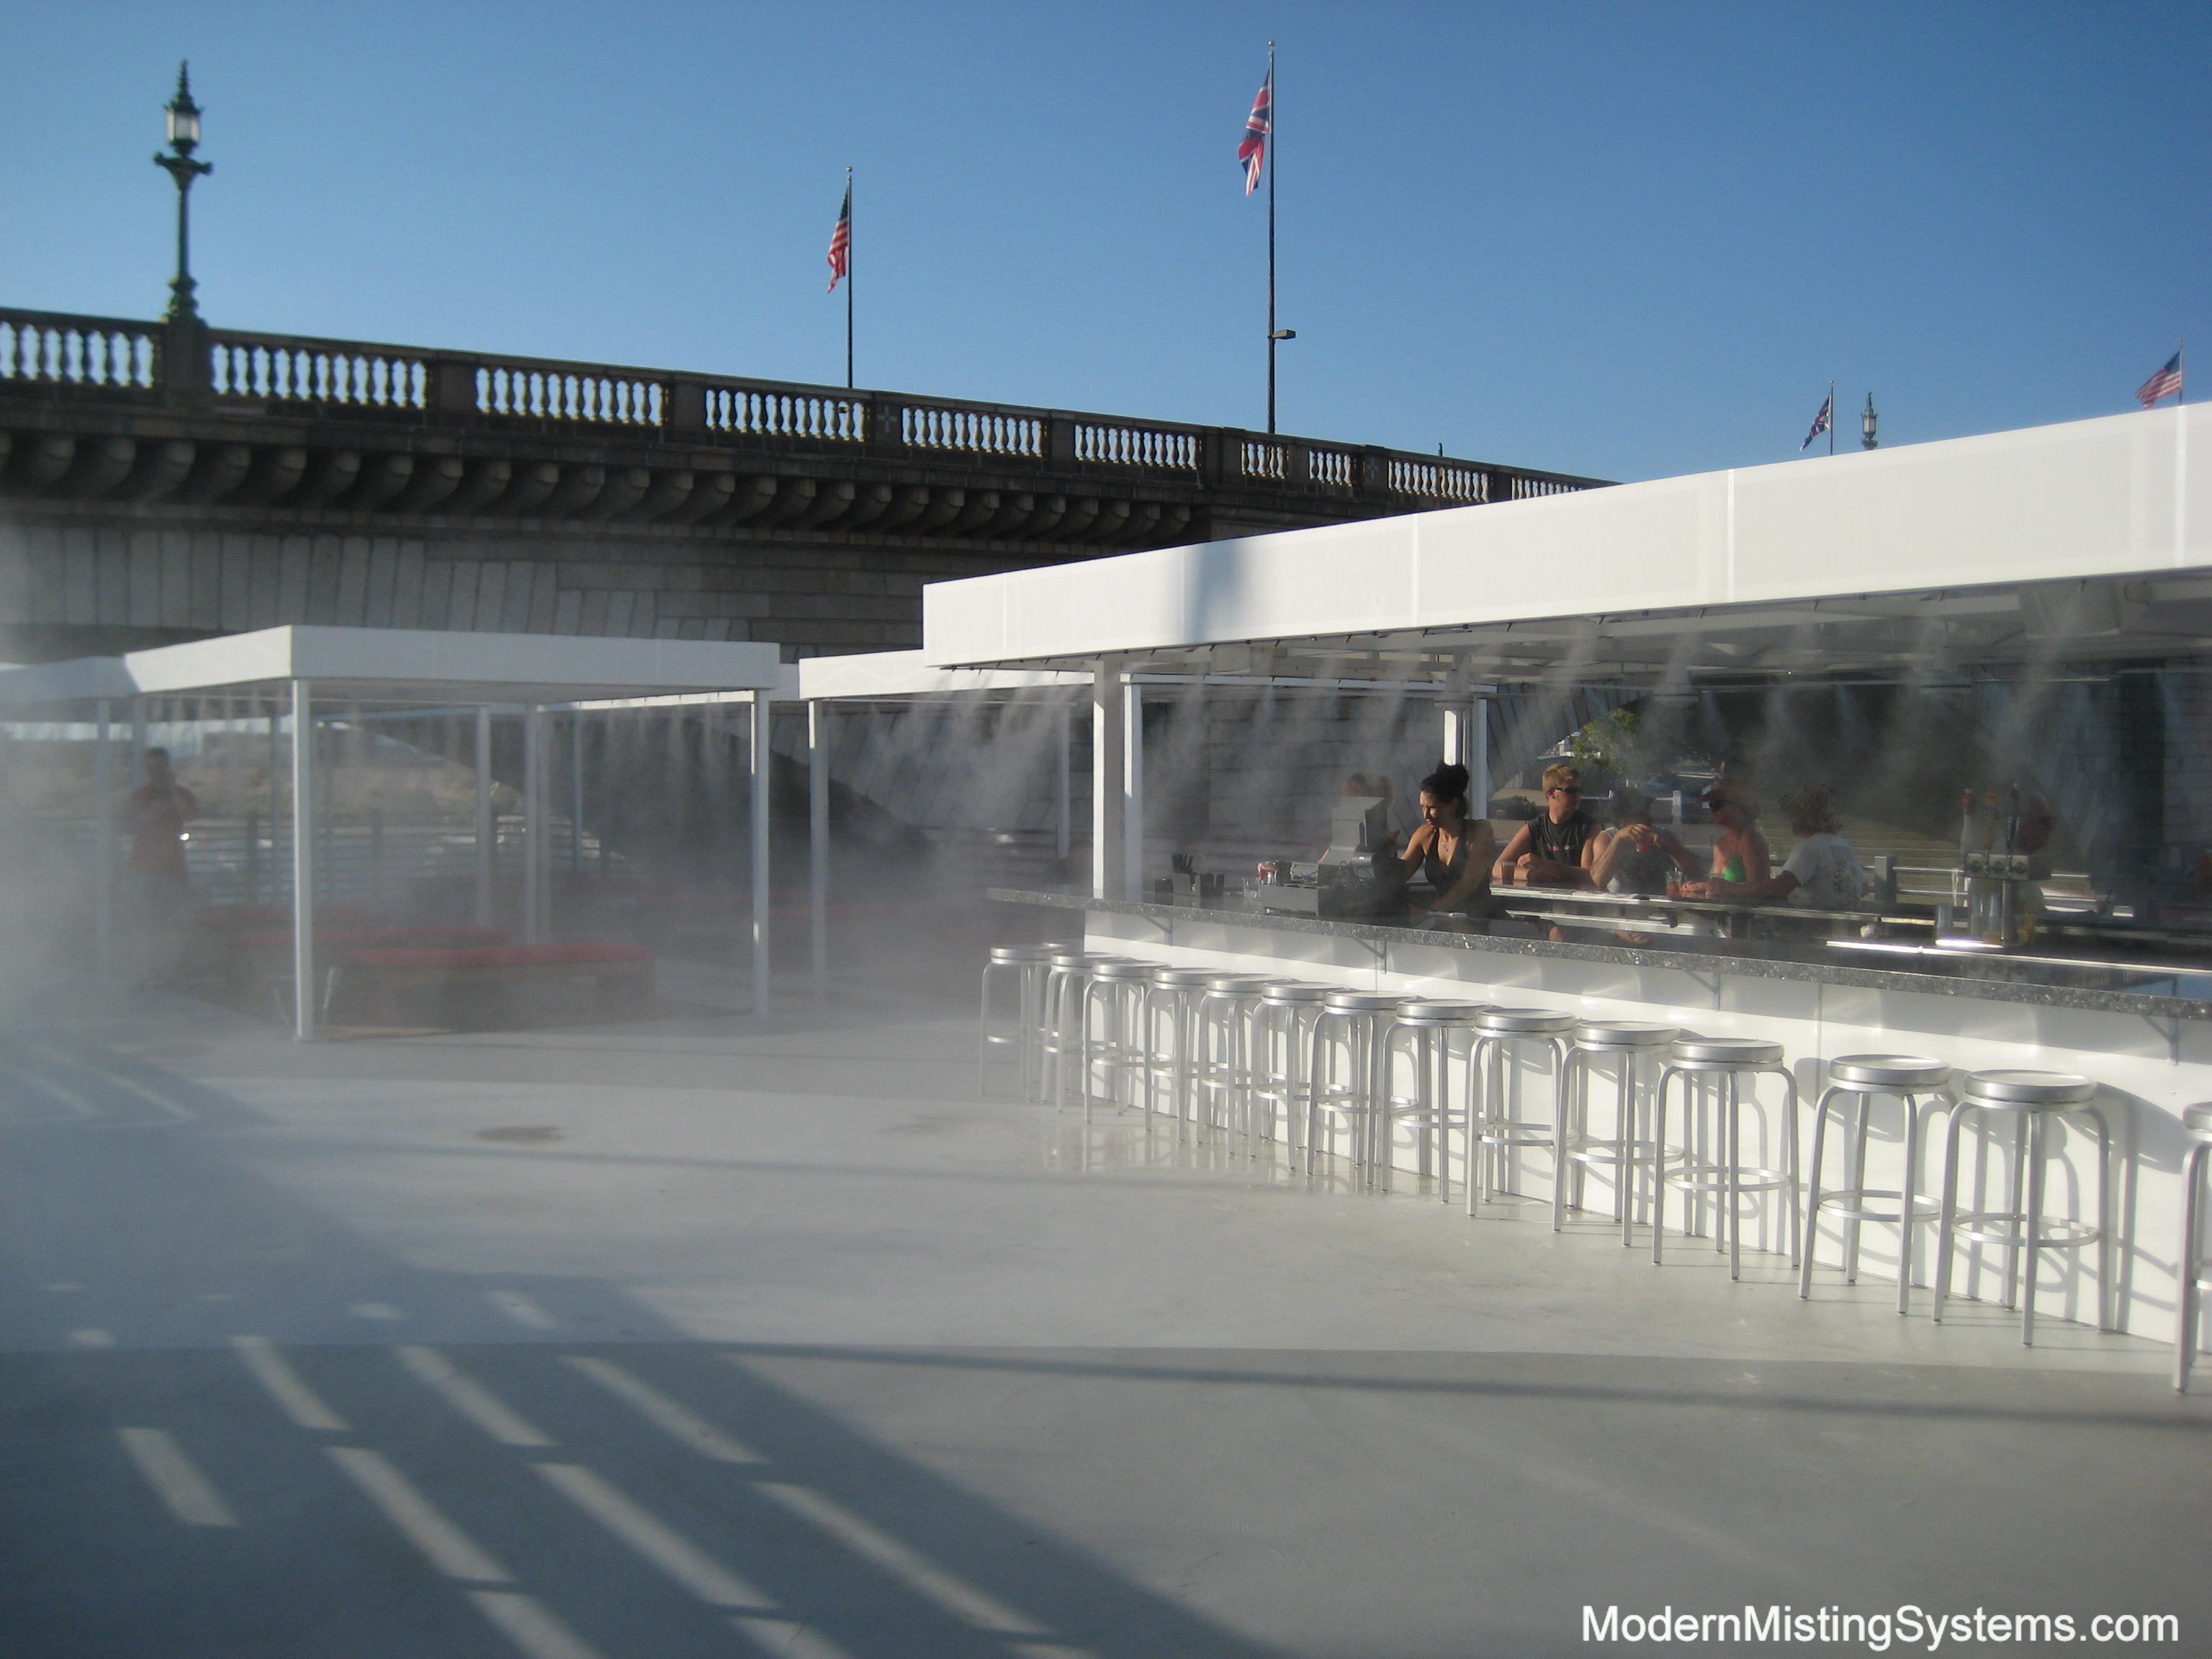 Misting Pumps provide mist in Lake Havasu Arizona